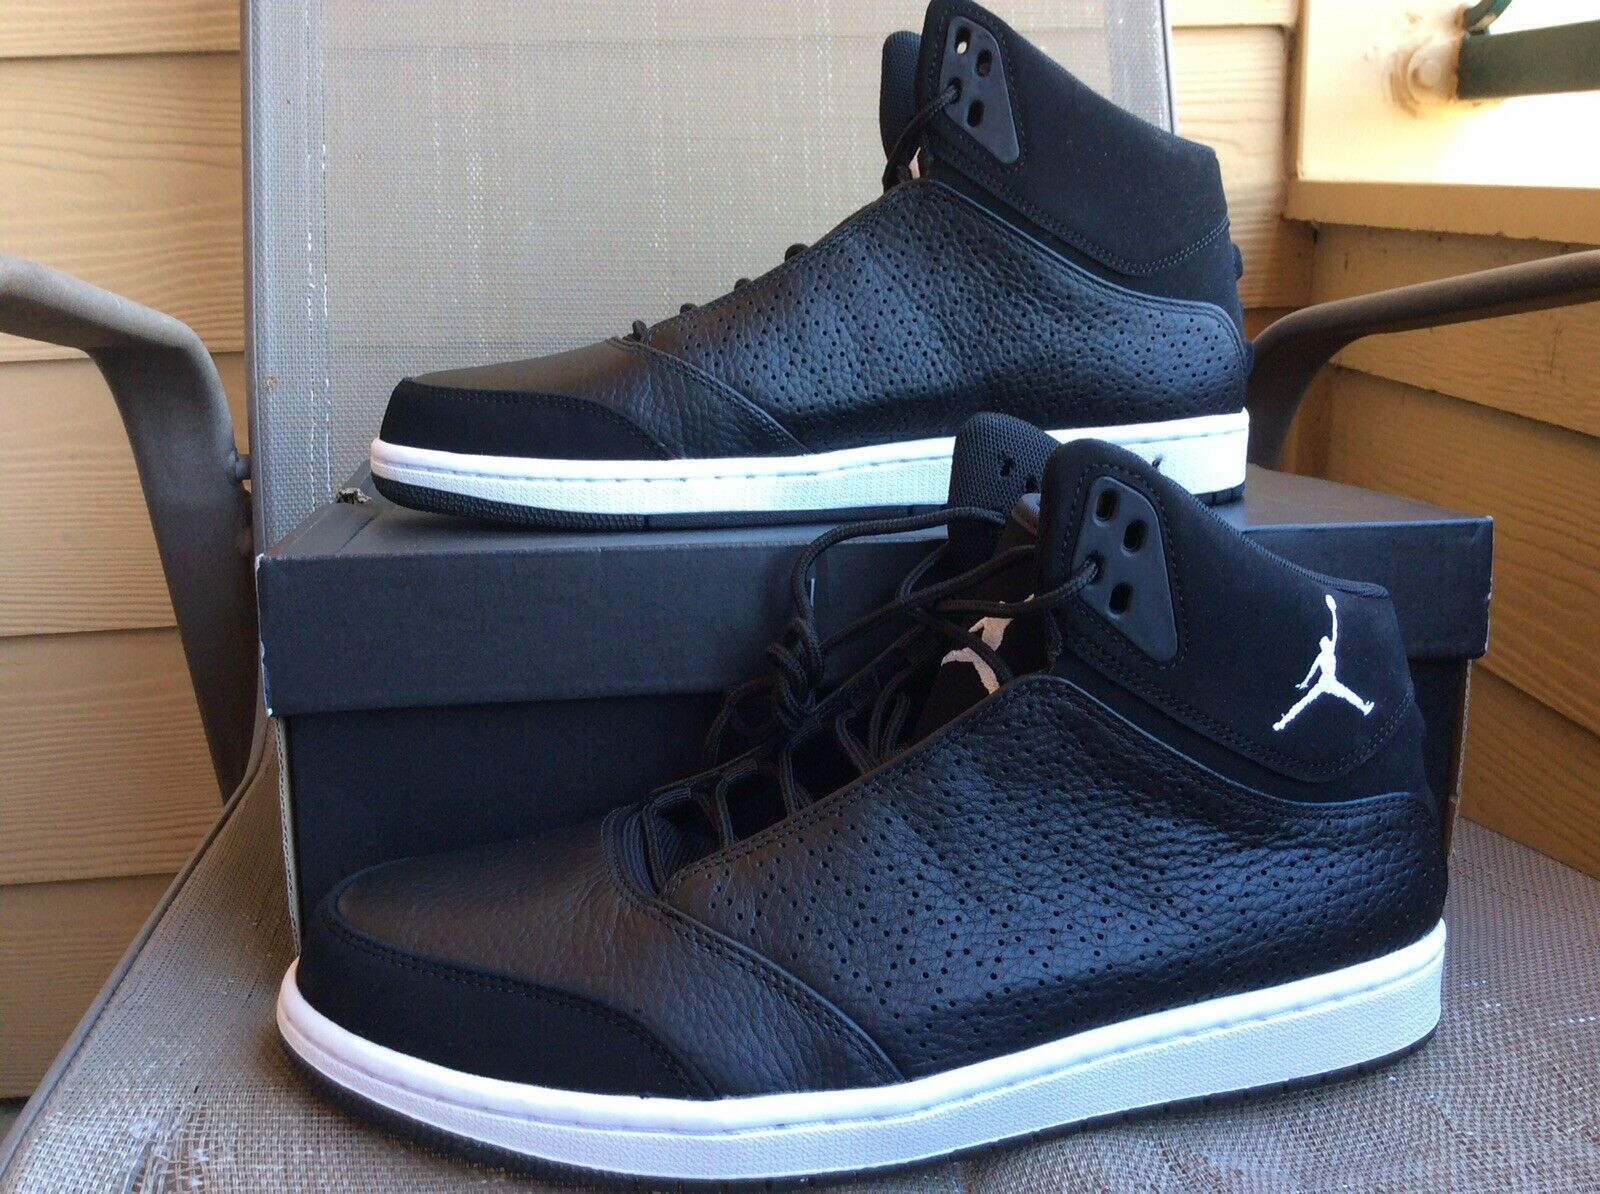 NEW MENS NIKE JORDAN 1 FLIGHT 5 PREM BASKETBALL SHOES BLACK WHITE 881434 Sz 10.5